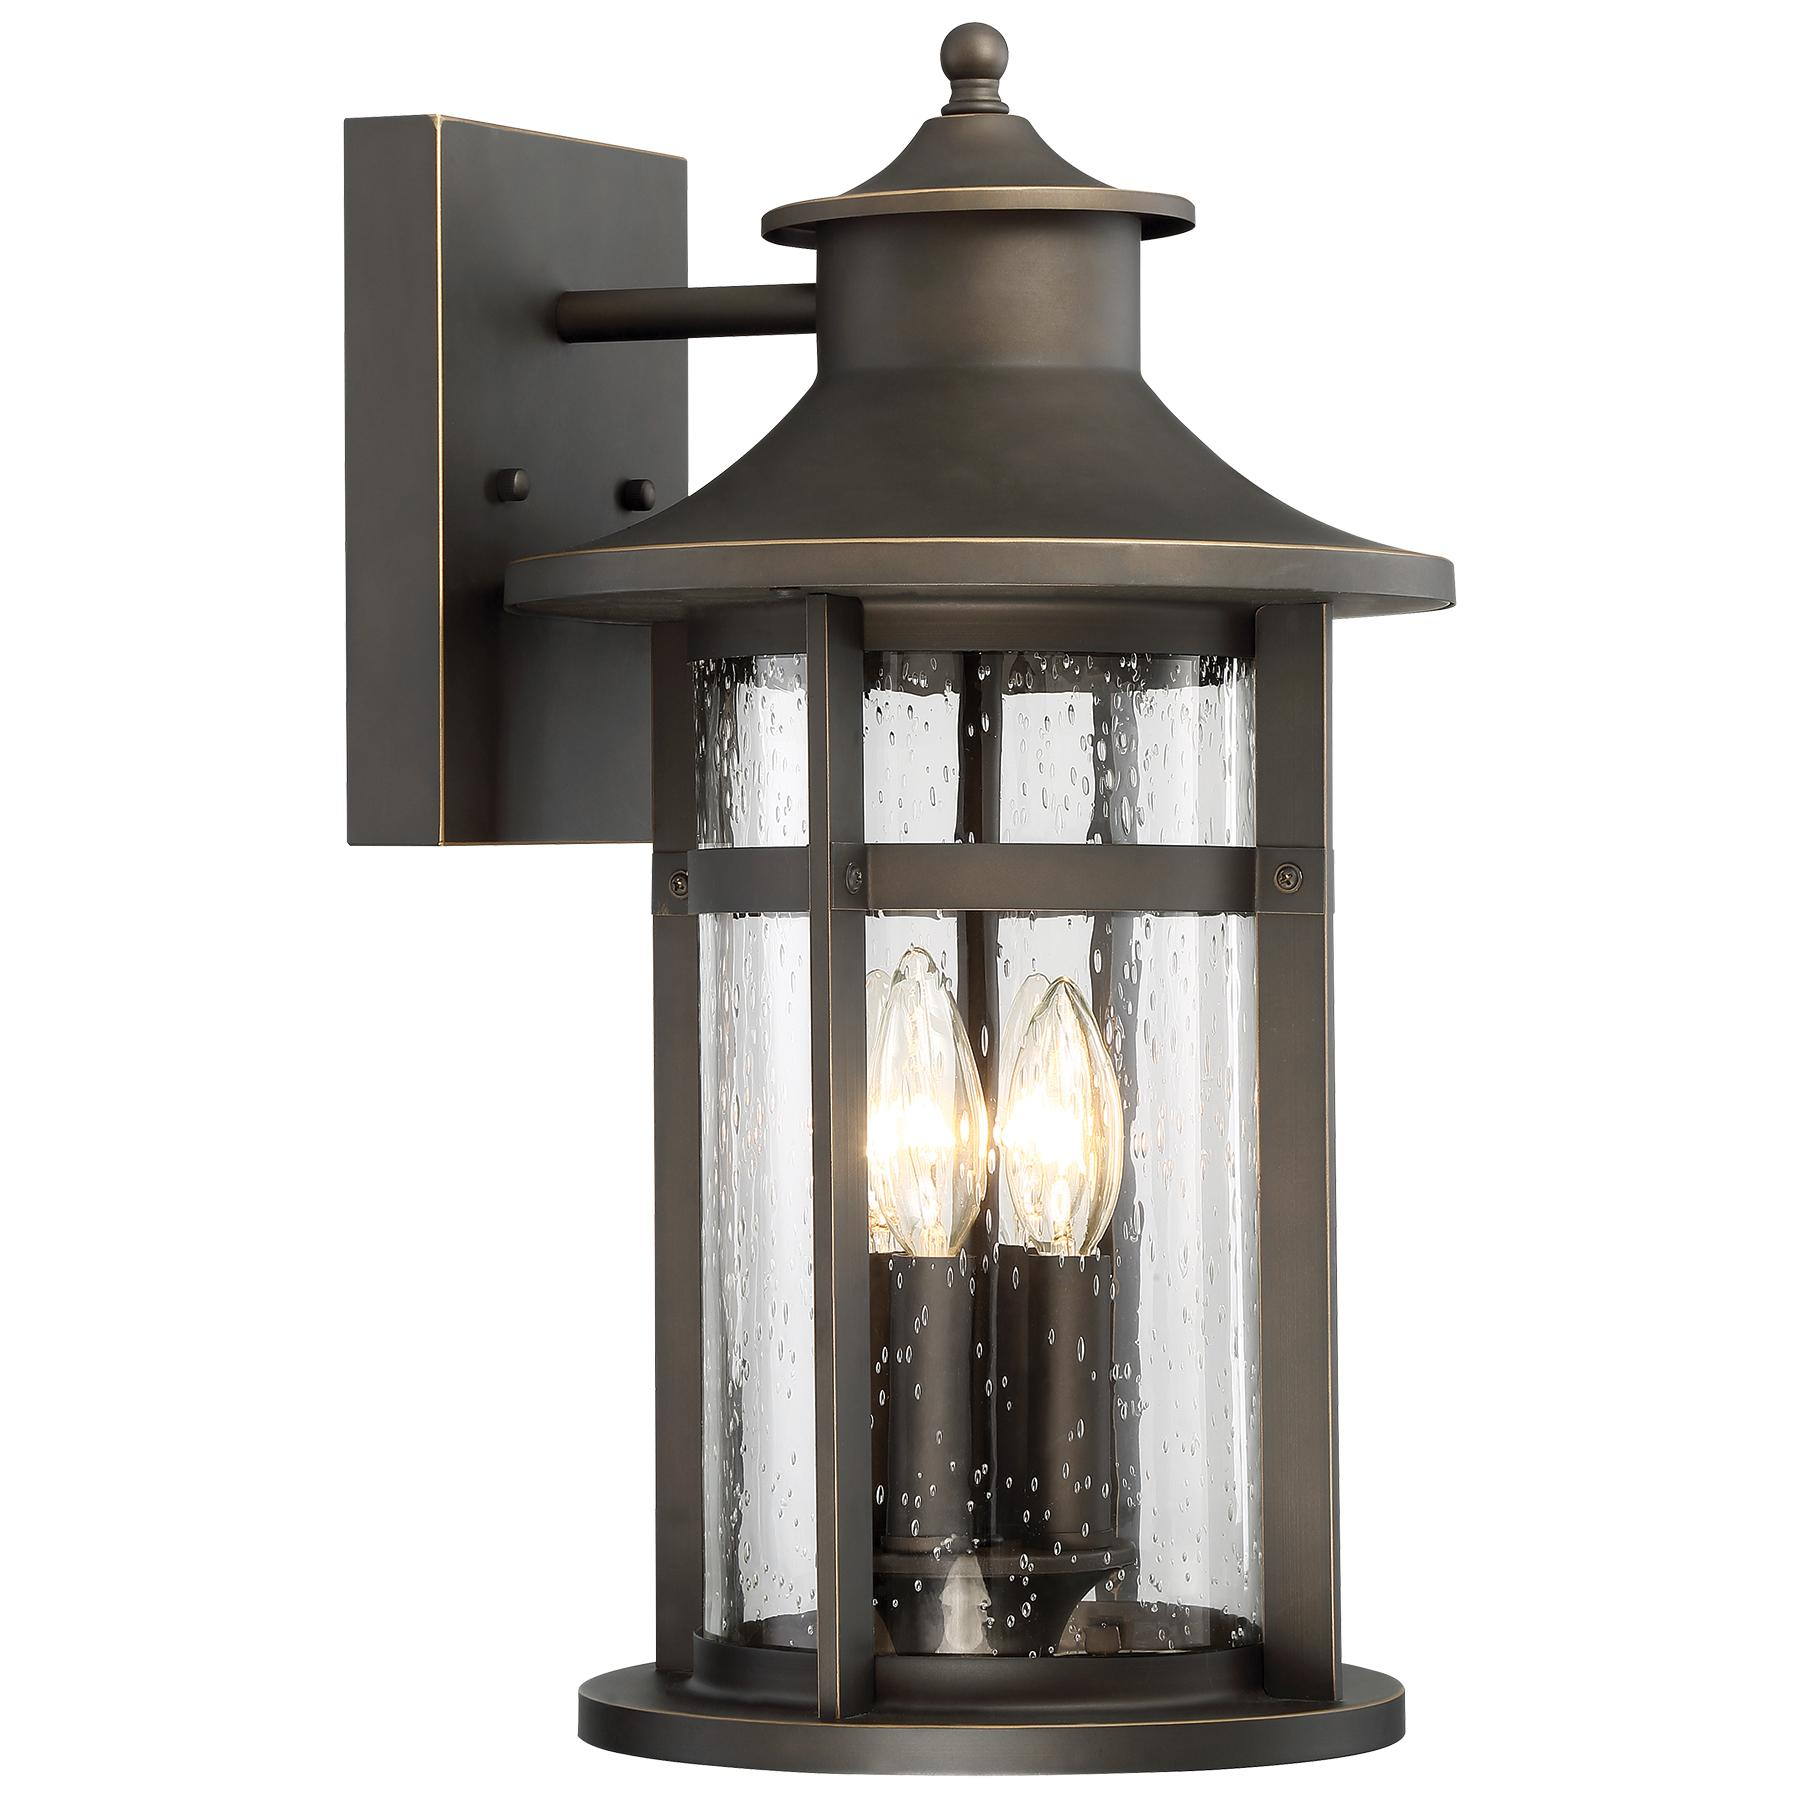 H - EXTERIOR LIGHT - Minka Group - The Great Outdoors - Highland Ridge - 17inch.jpg